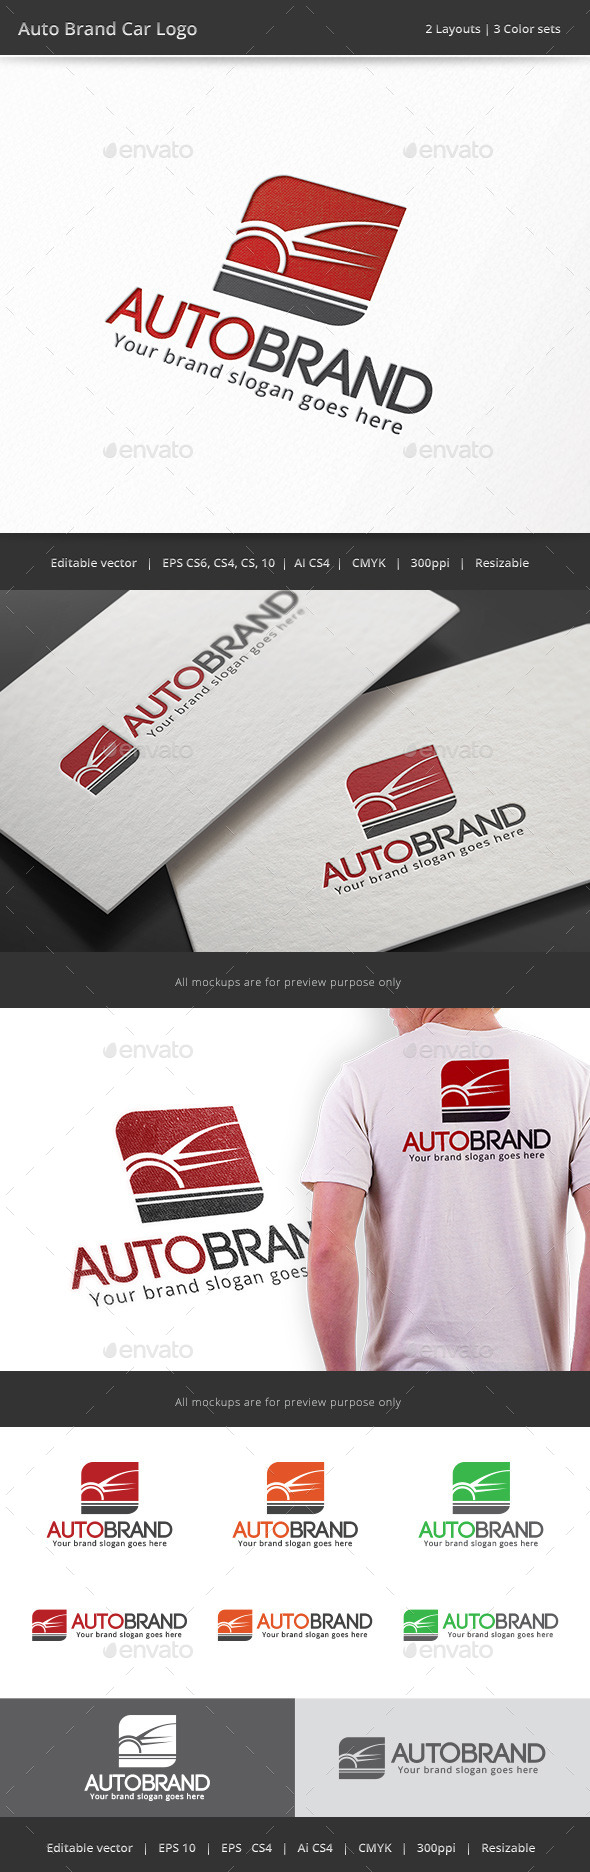 GraphicRiver Auto Brand Car Logo 9182197